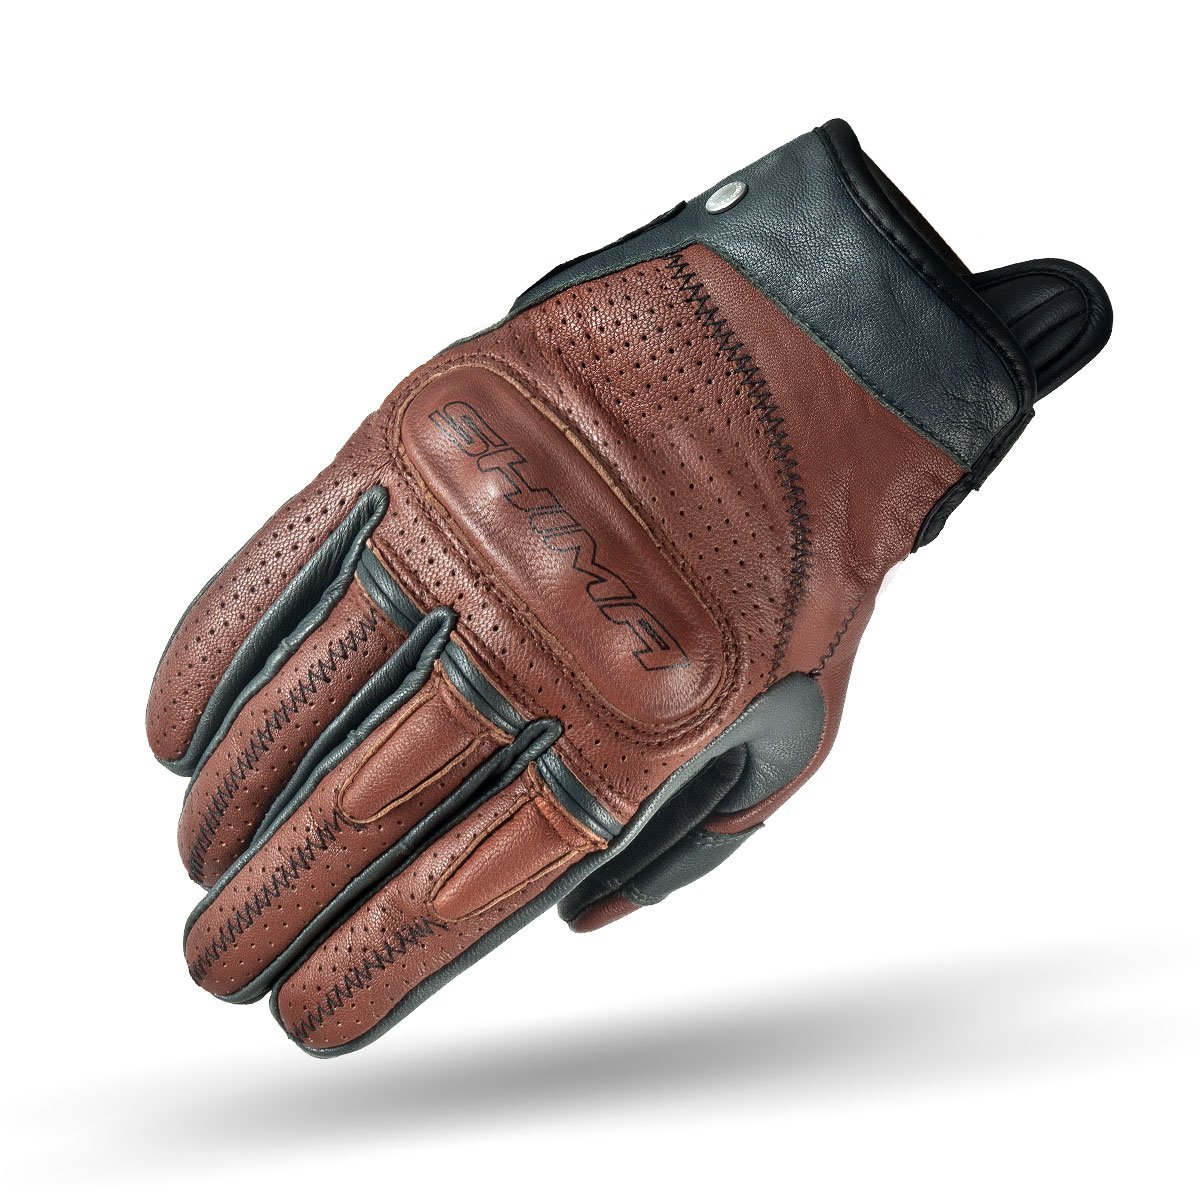 SHIMA Caliber Brown, Heritage Retro Vintage Classic Summer Motorcycle Gloves (S-XXL), Brown, Size:XL